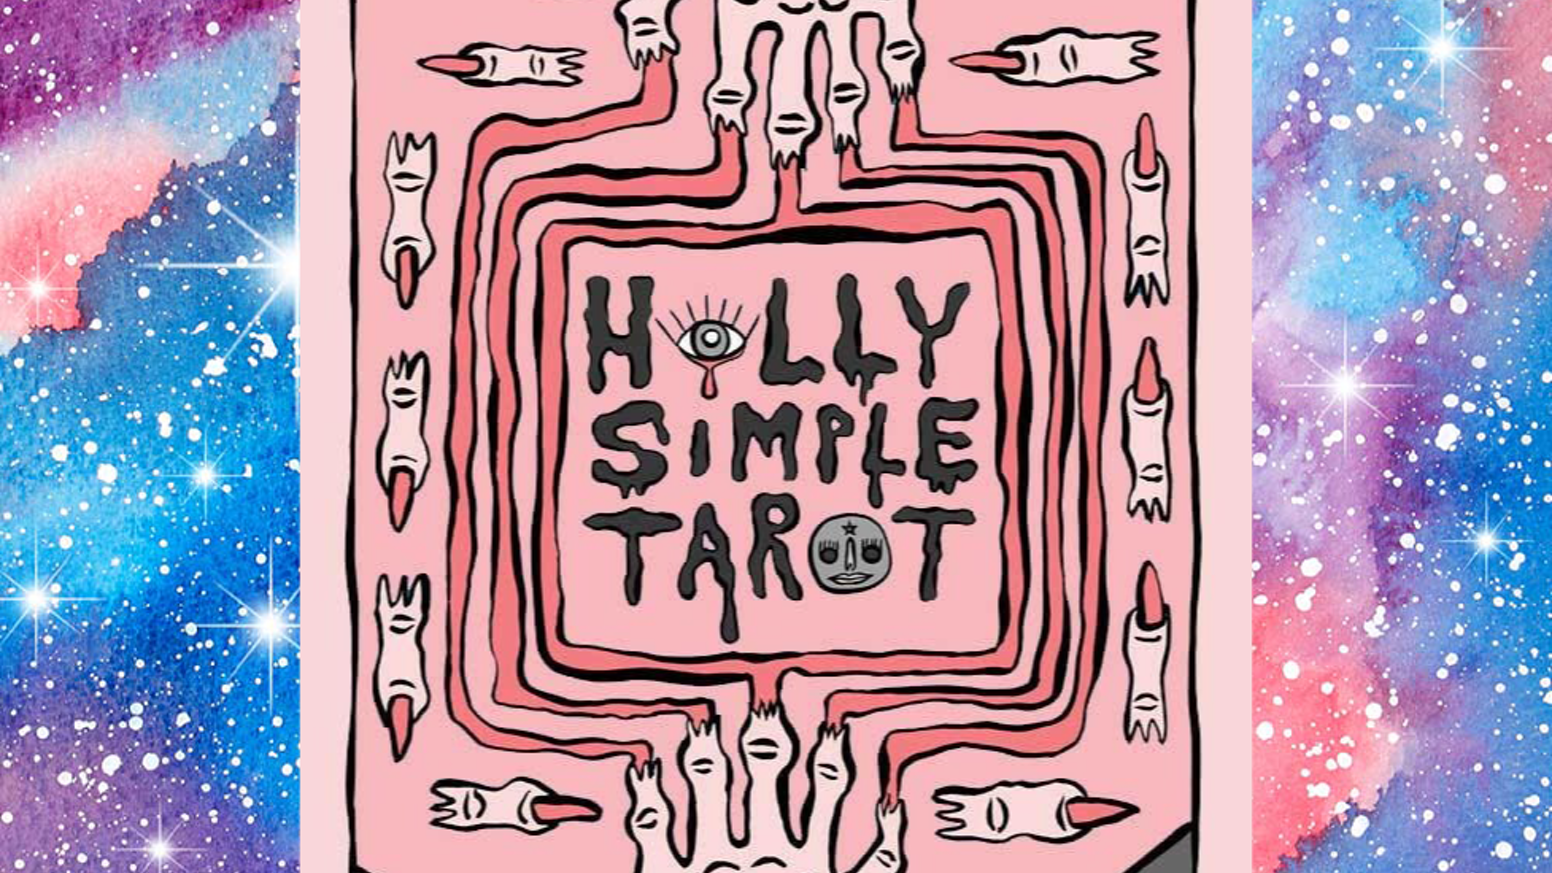 78 original ink drawings - colored and compiled to make one uniquely designed tarot deck in the Holly Simple style.